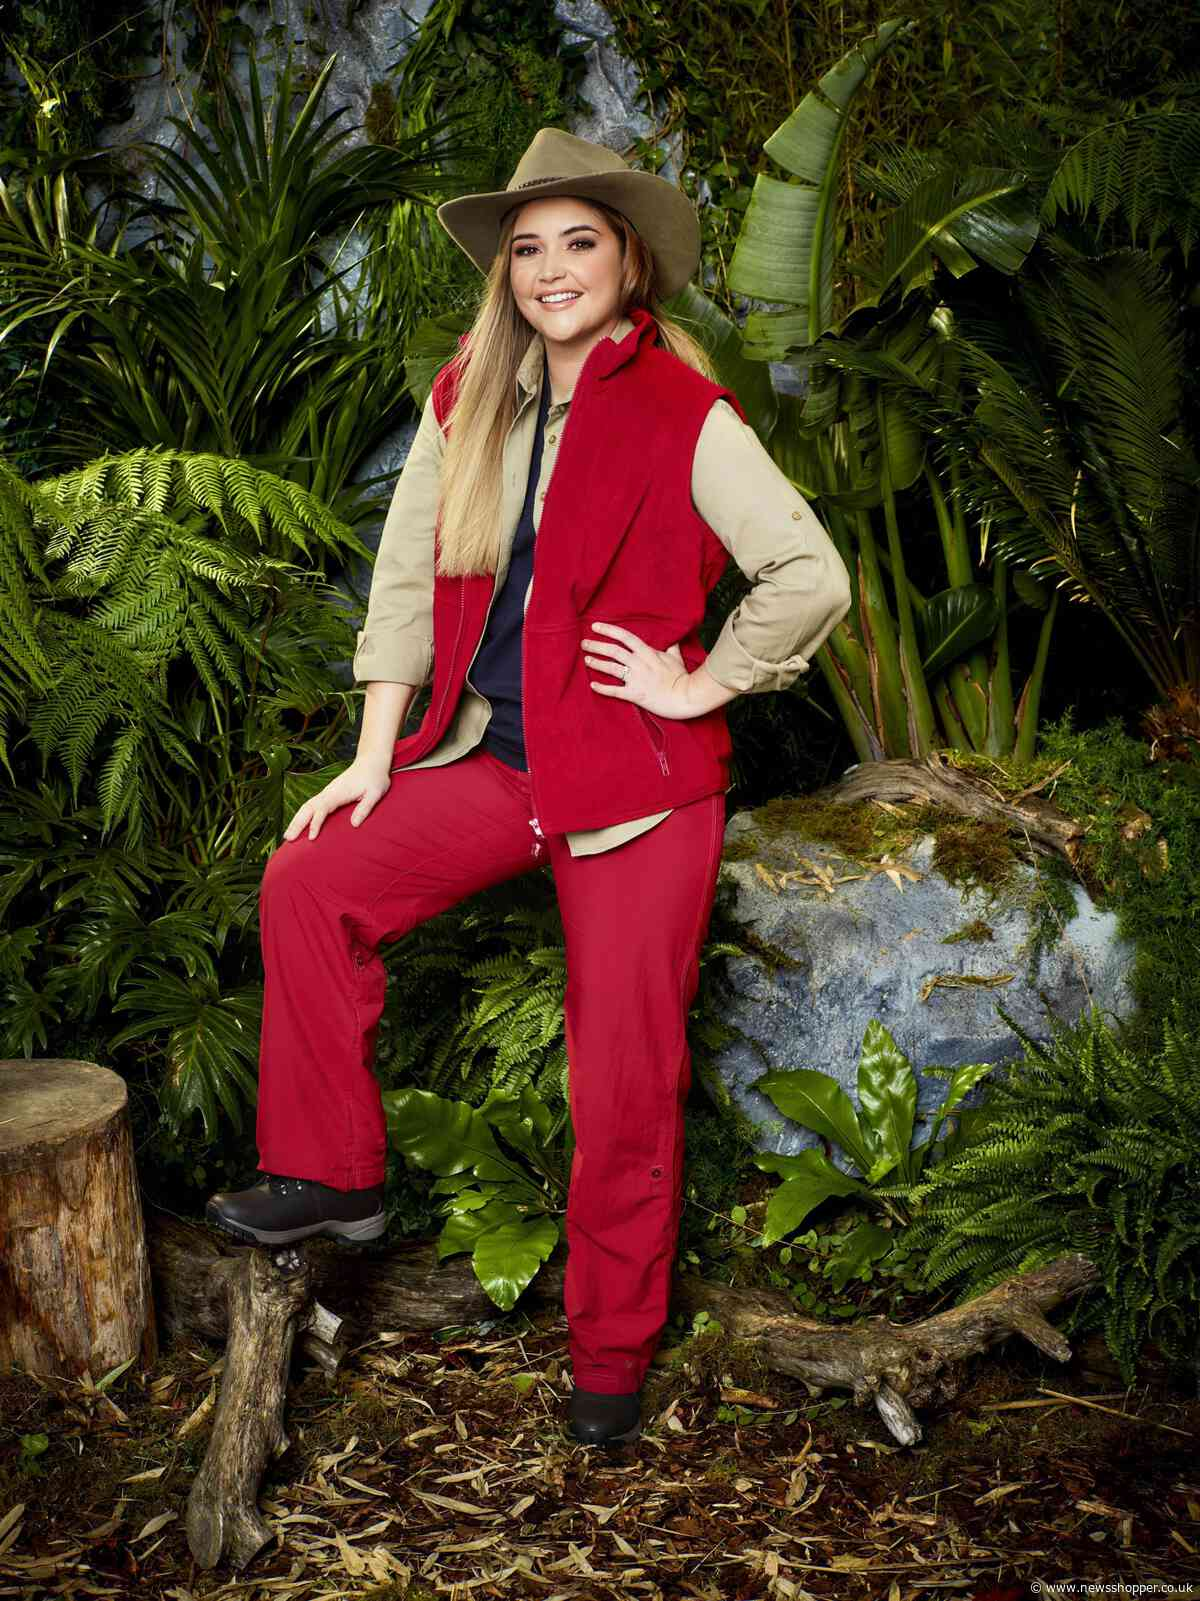 EastEnders star from Bexley Jacqueline Jossa wins I'm a Celeb 2019